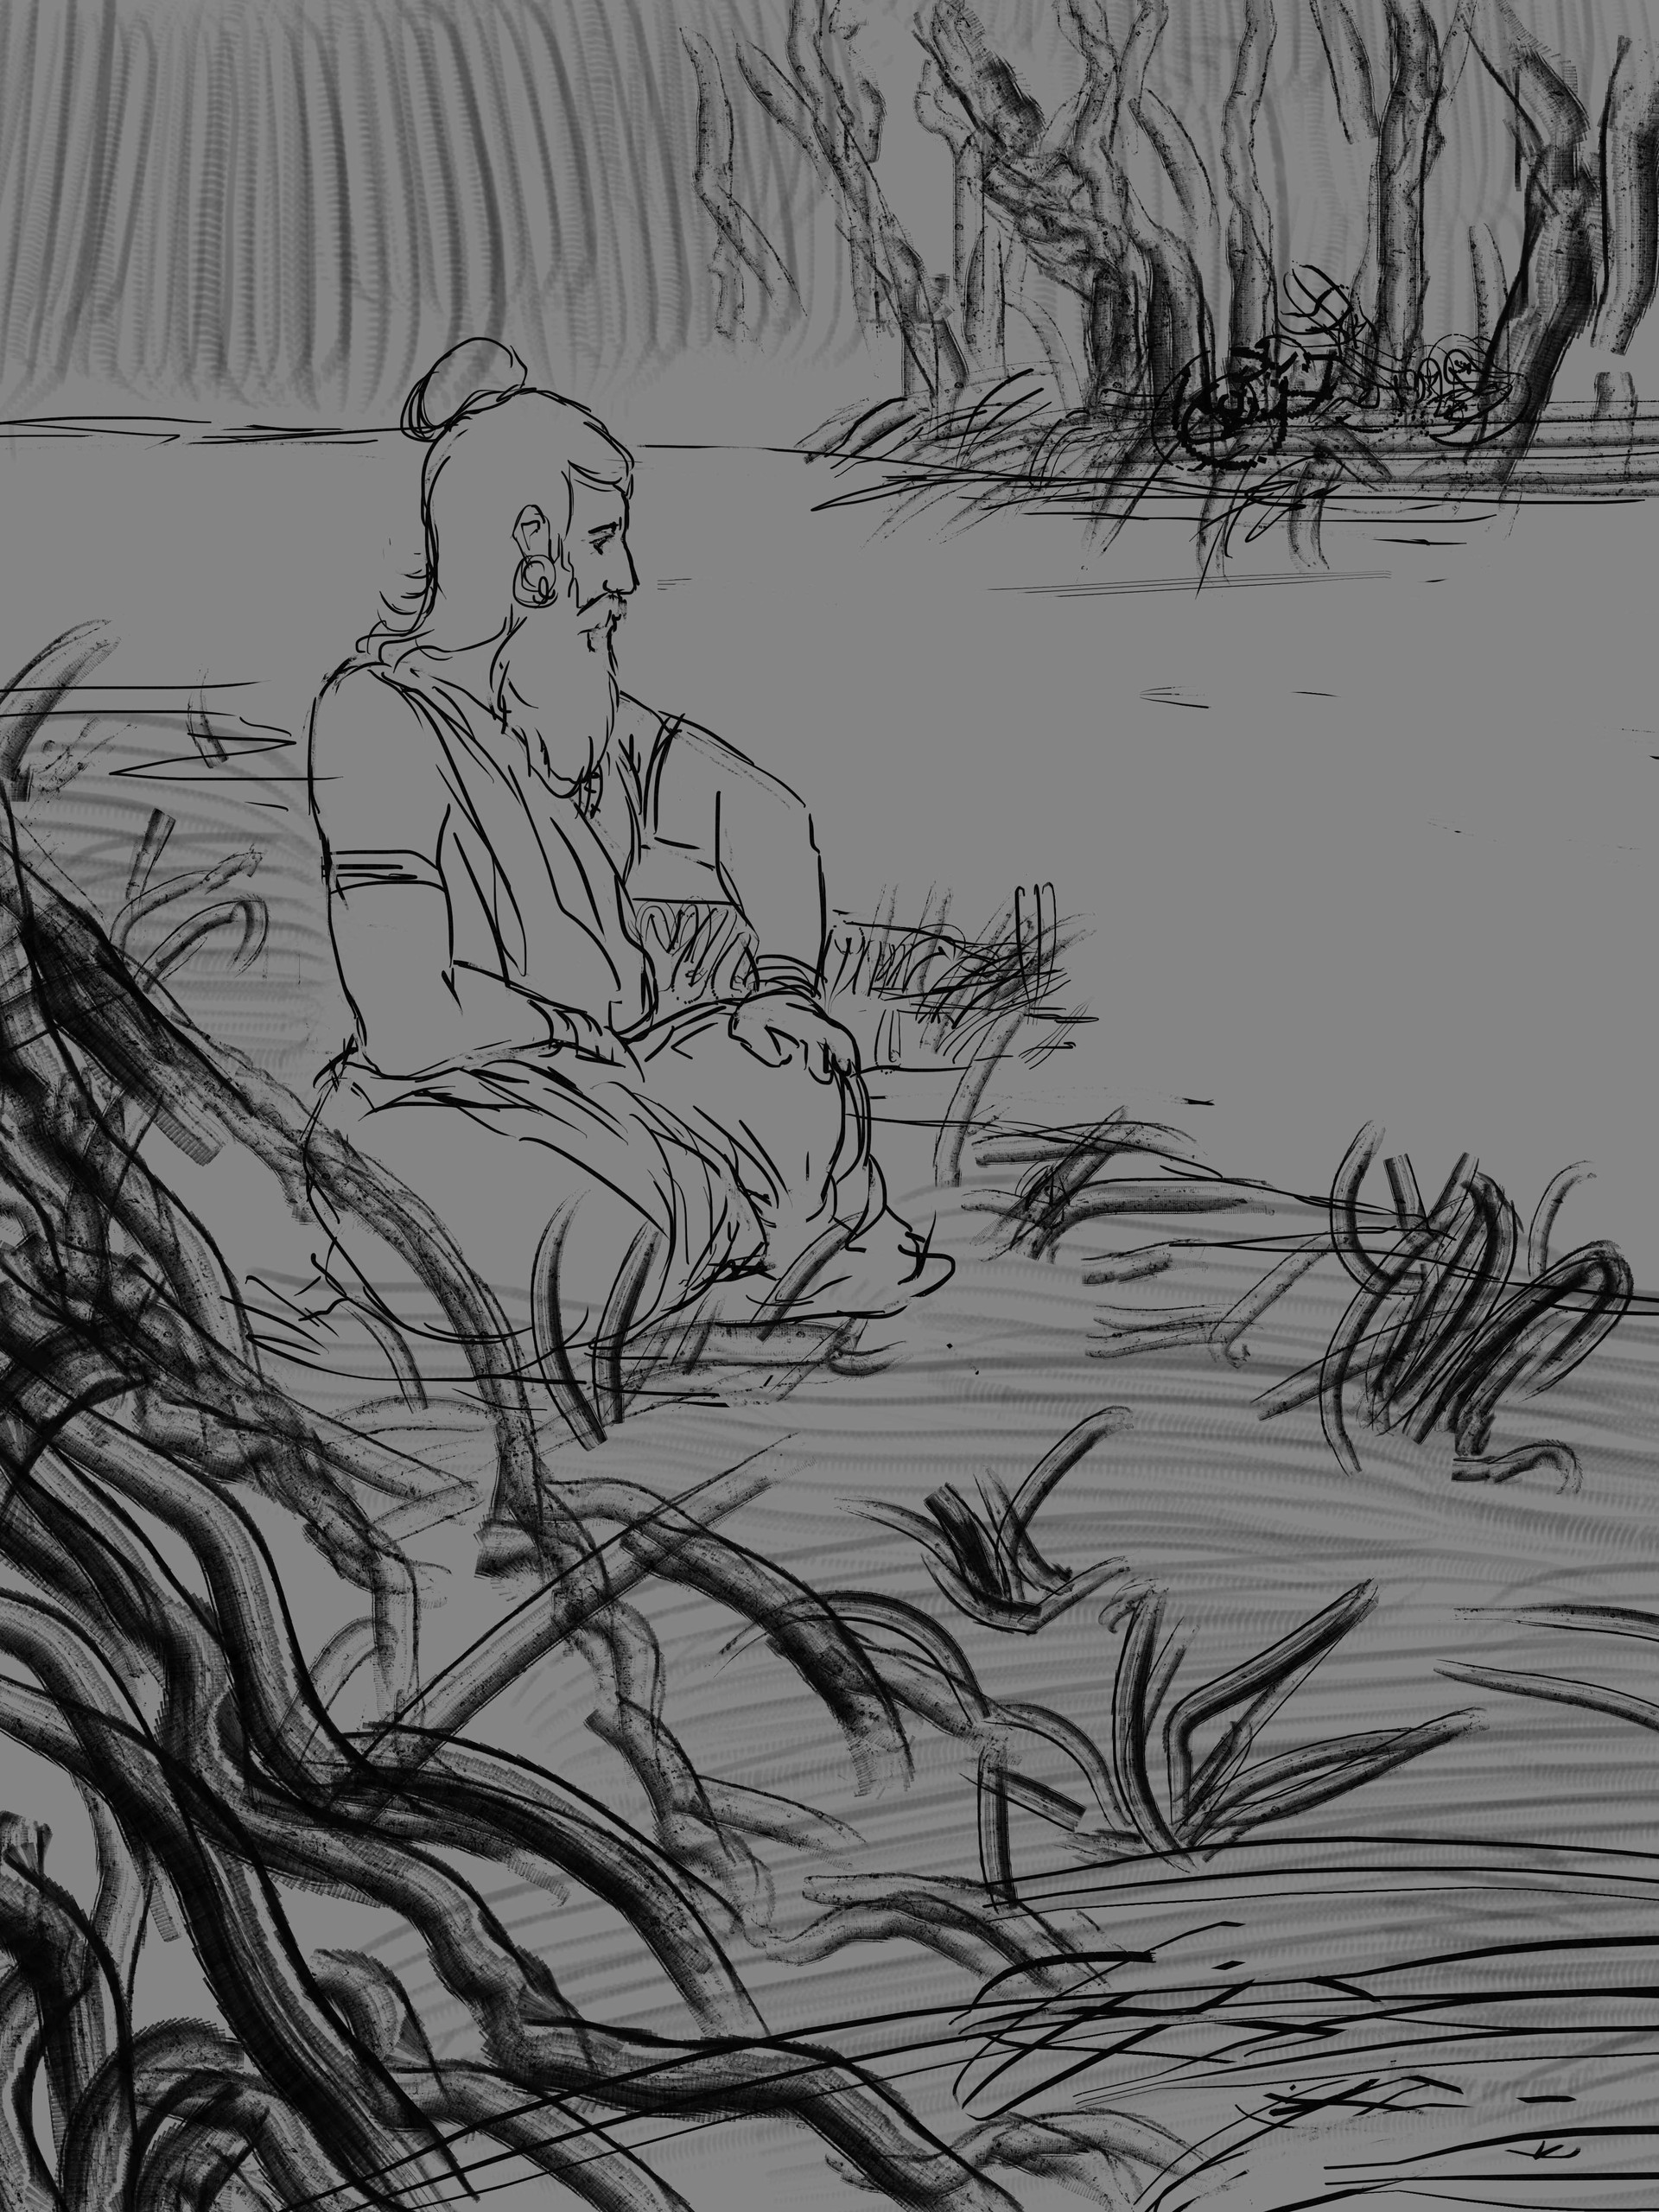 Sketch 2 - The picked this one and requested to add the animals as an afterthought